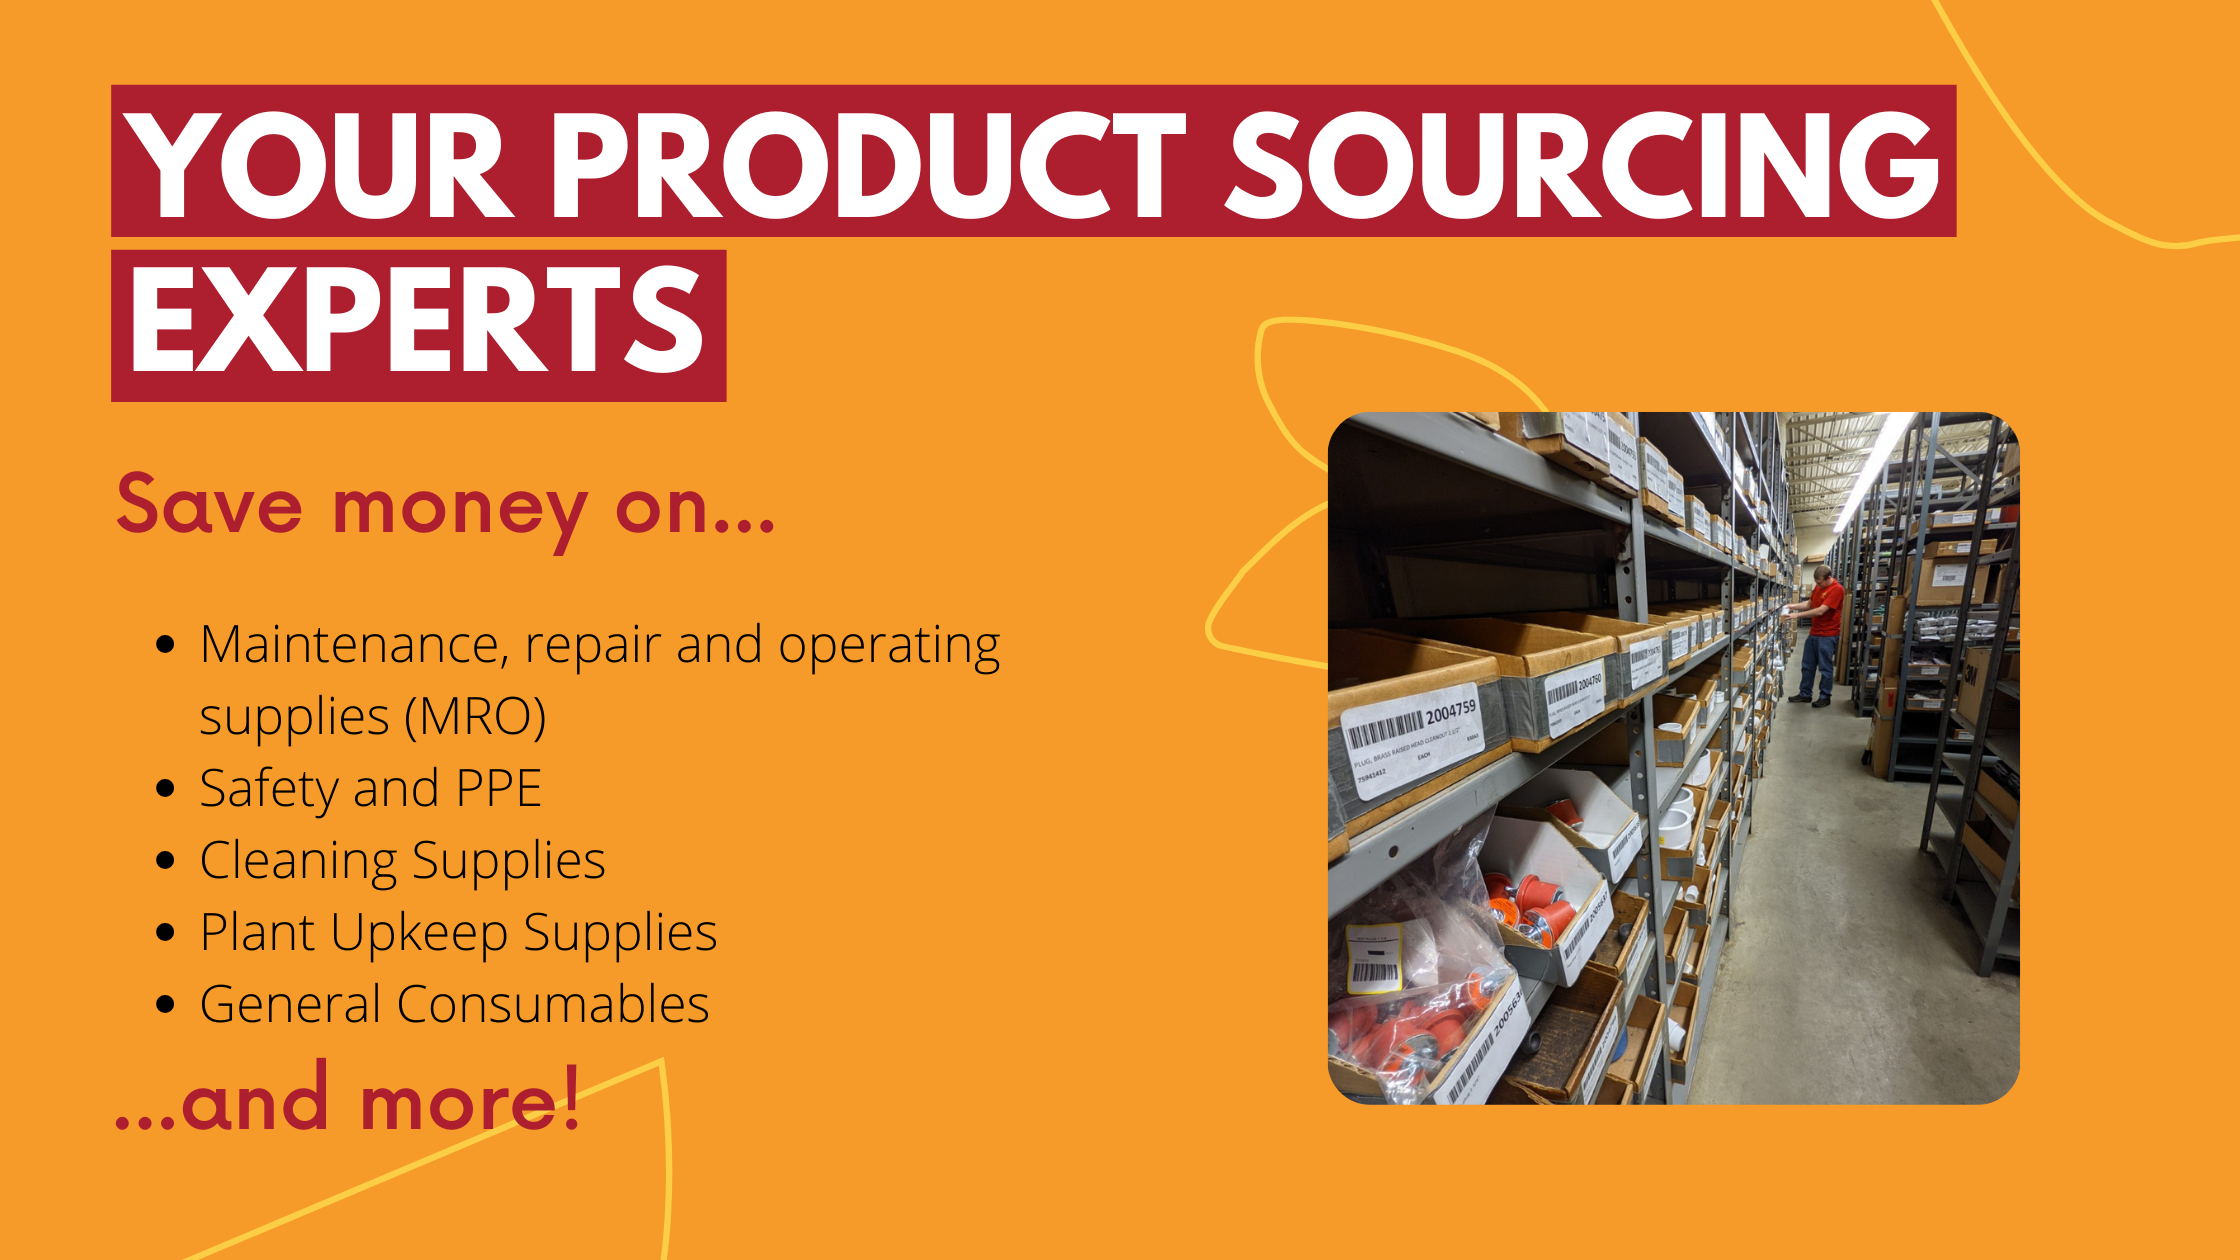 Sourcing Experts